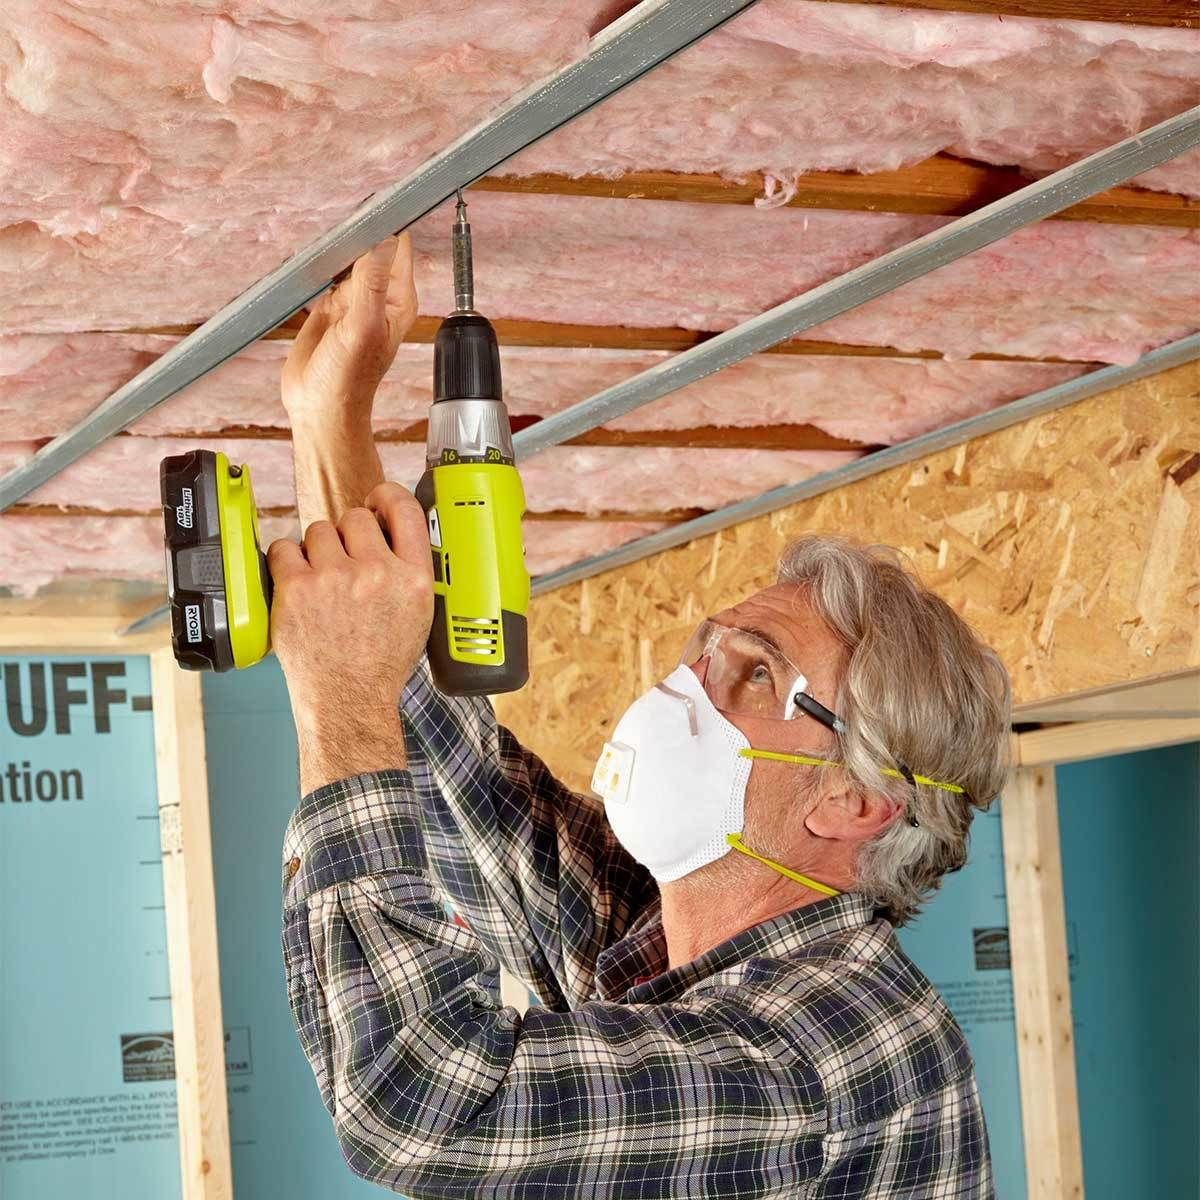 20 Things You Absolutely Must Insulate Before Winter Basement Cool Basement Ideas Basement Layout